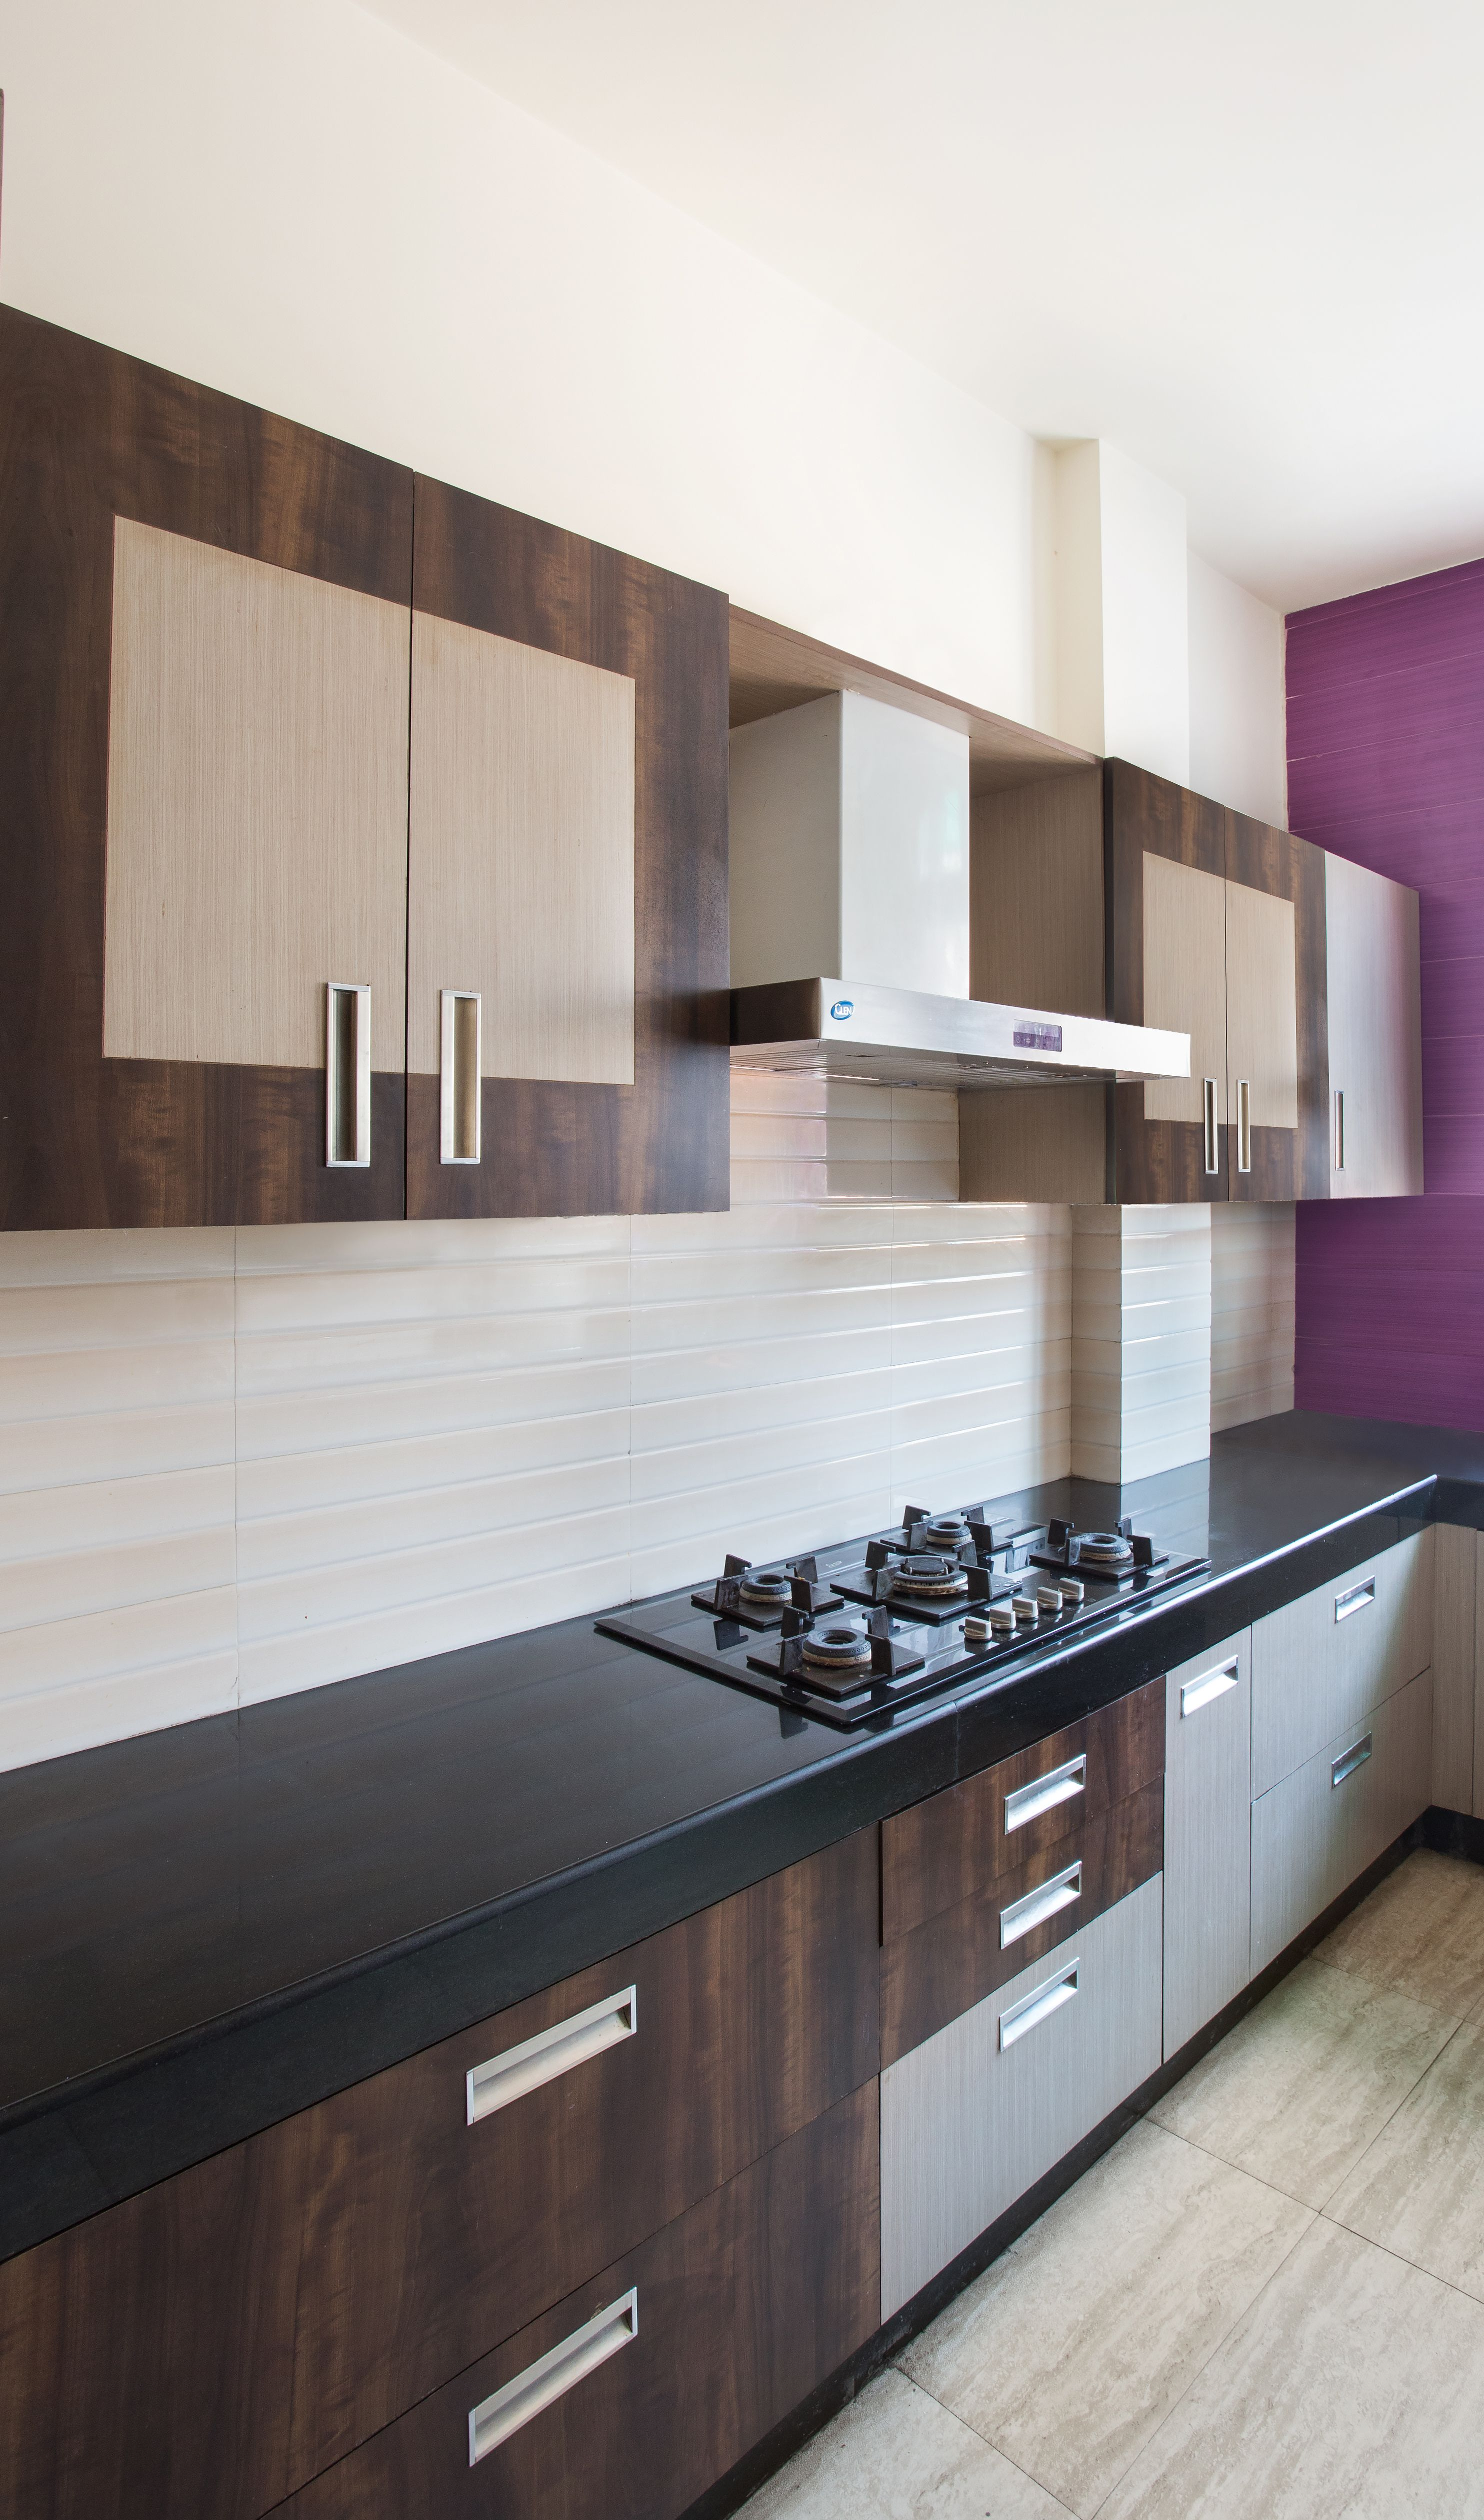 One Stop Interior Solutions We Provide Solutions To Our Clients For Al Interior Design Kitchen Kitchen Interior Design Decor Modern Kitchen Cabinet Design